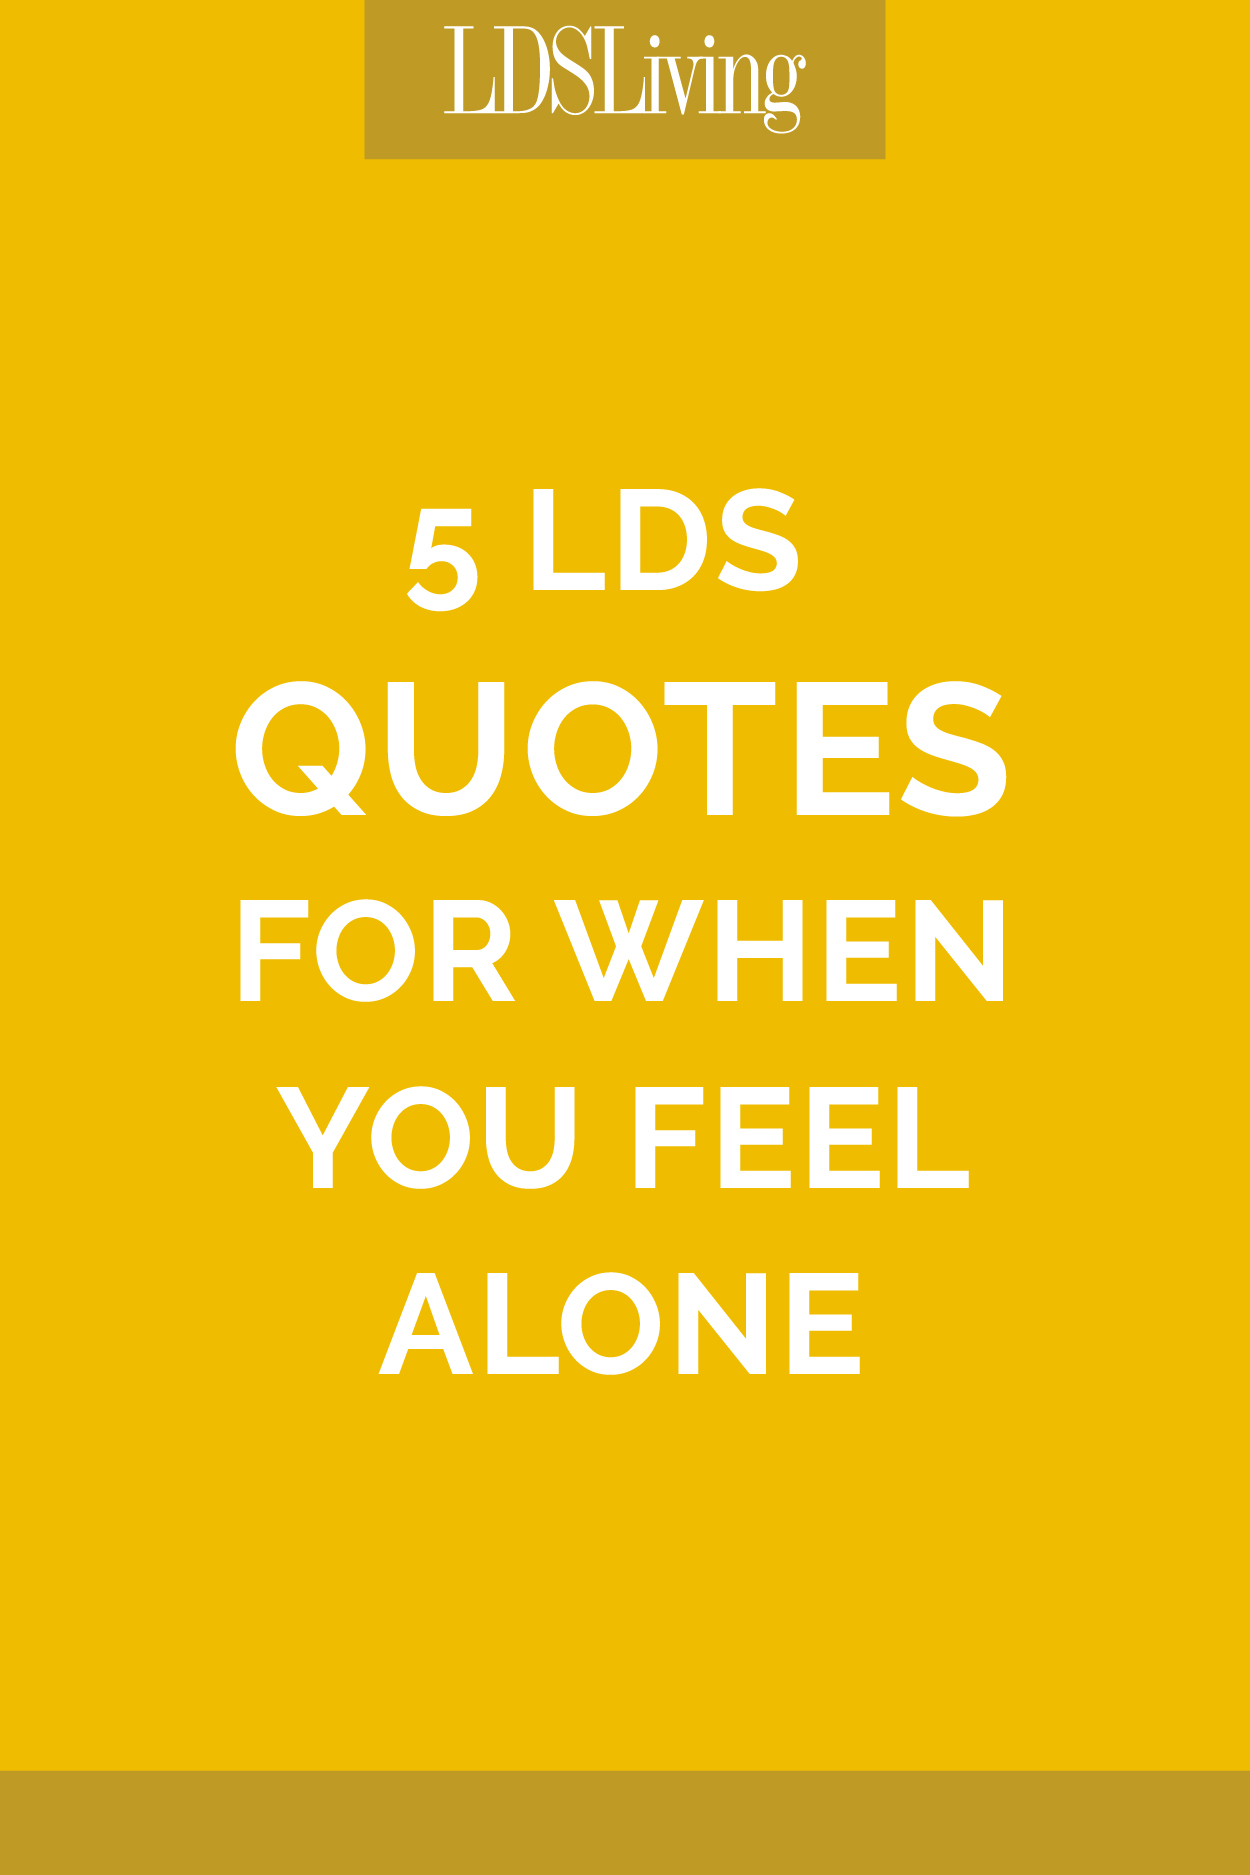 I Feel Alone Quotes 6 Lds Quotes For When You Feel Alone  Lds Living